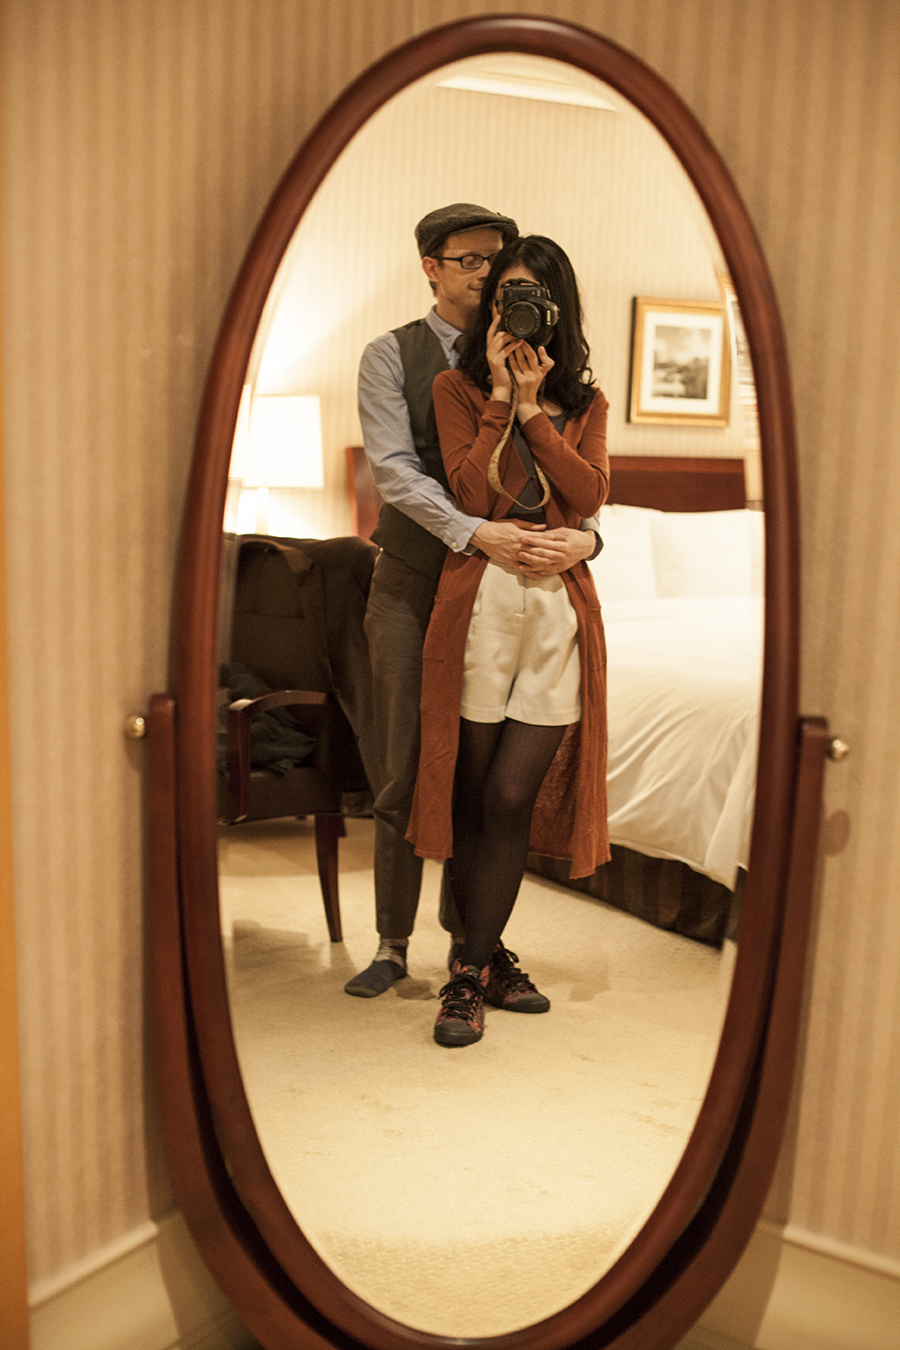 Mirror shot of Ren & Ottie at Lotte Hotel, Myeongdong, Korea